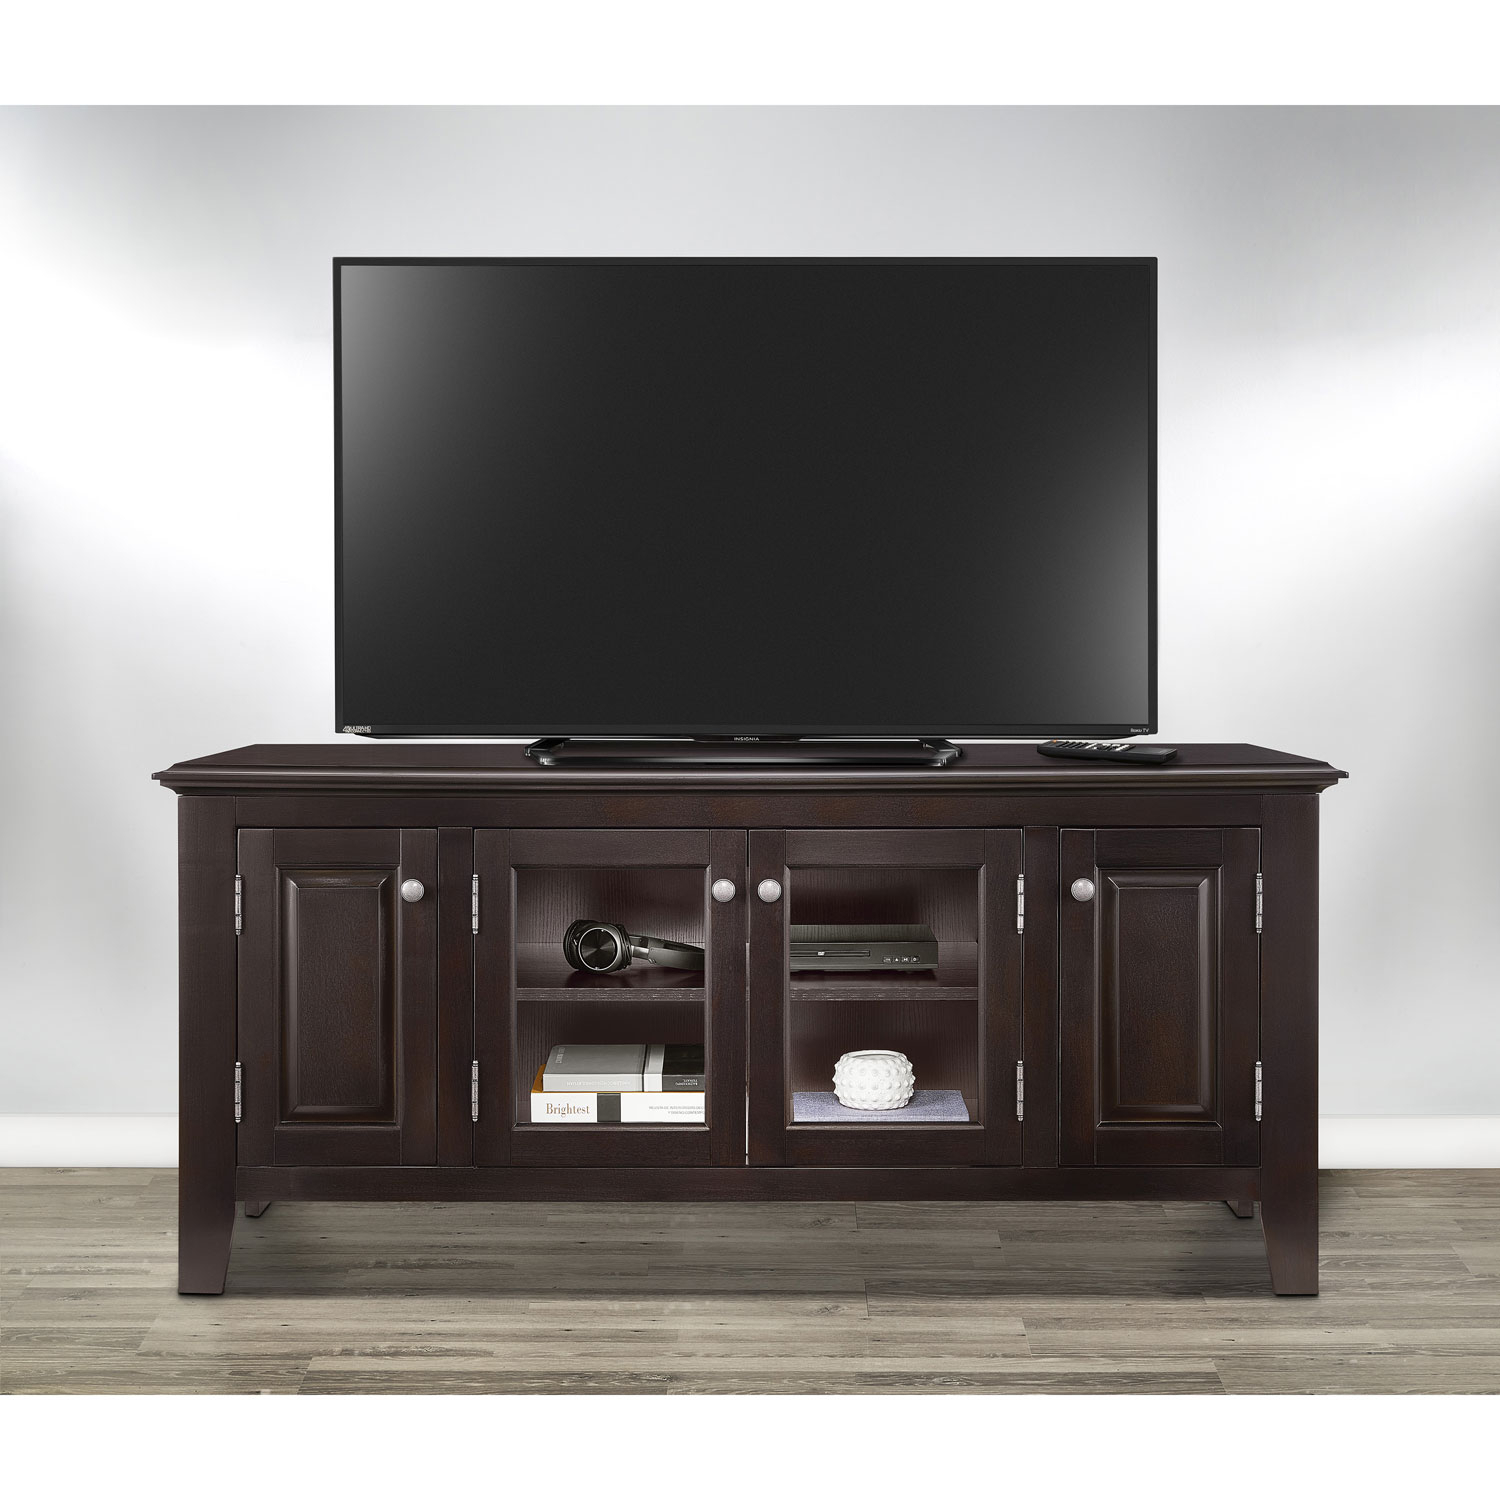 """Insignia 60"""" Tv Stand – Dark Espresso : Tv Stands – Best Buy Canada Within Valencia 60 Inch Tv Stands (View 23 of 30)"""